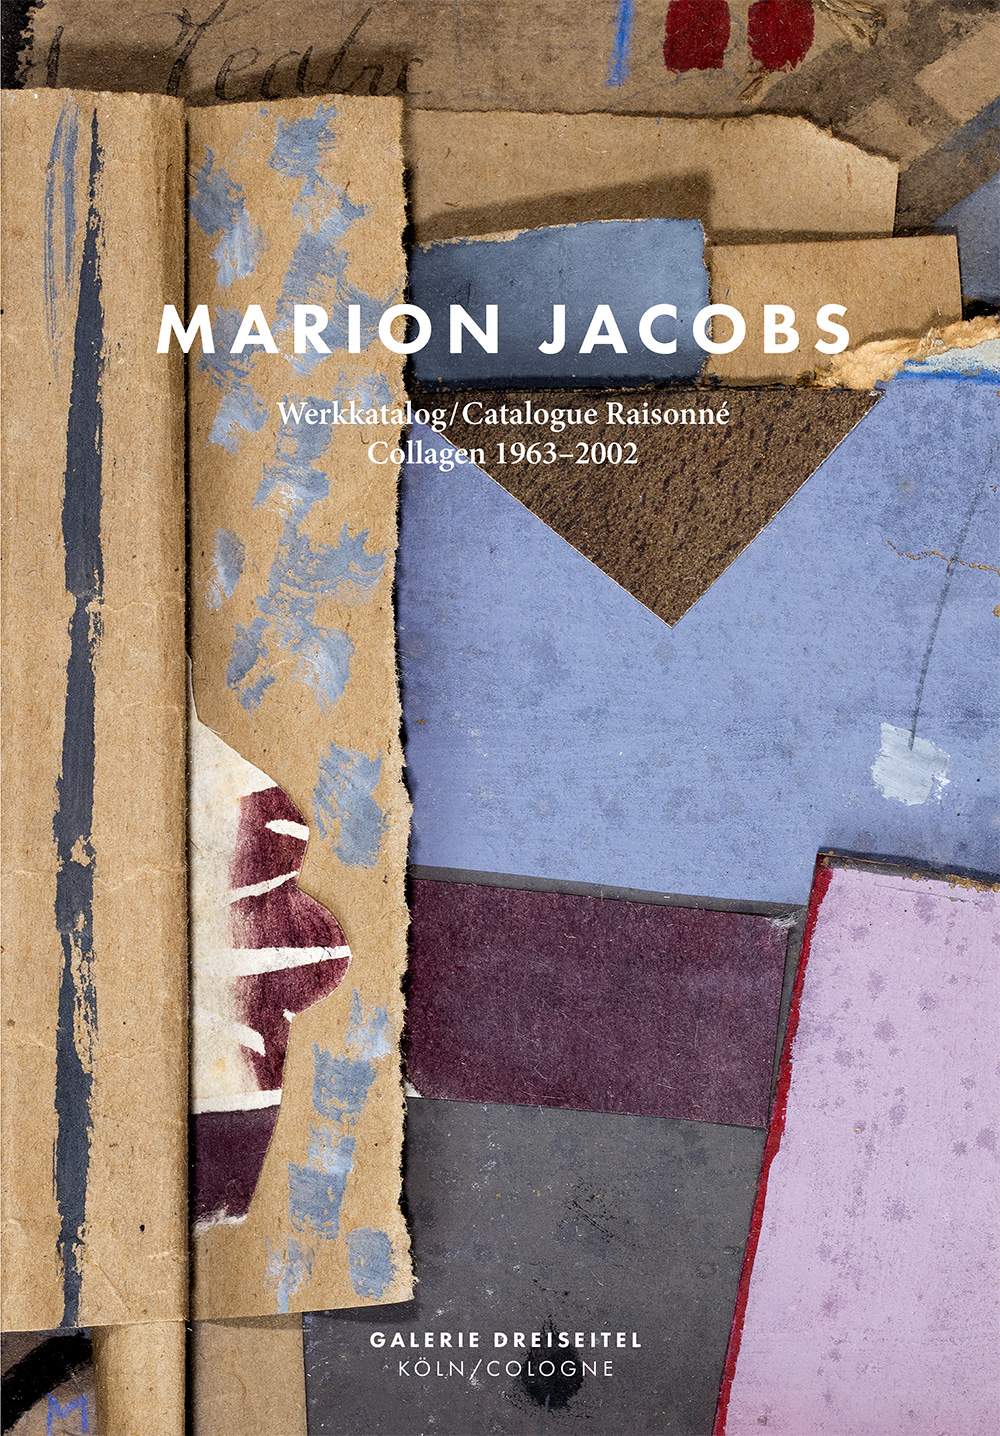 MARION JACOBS